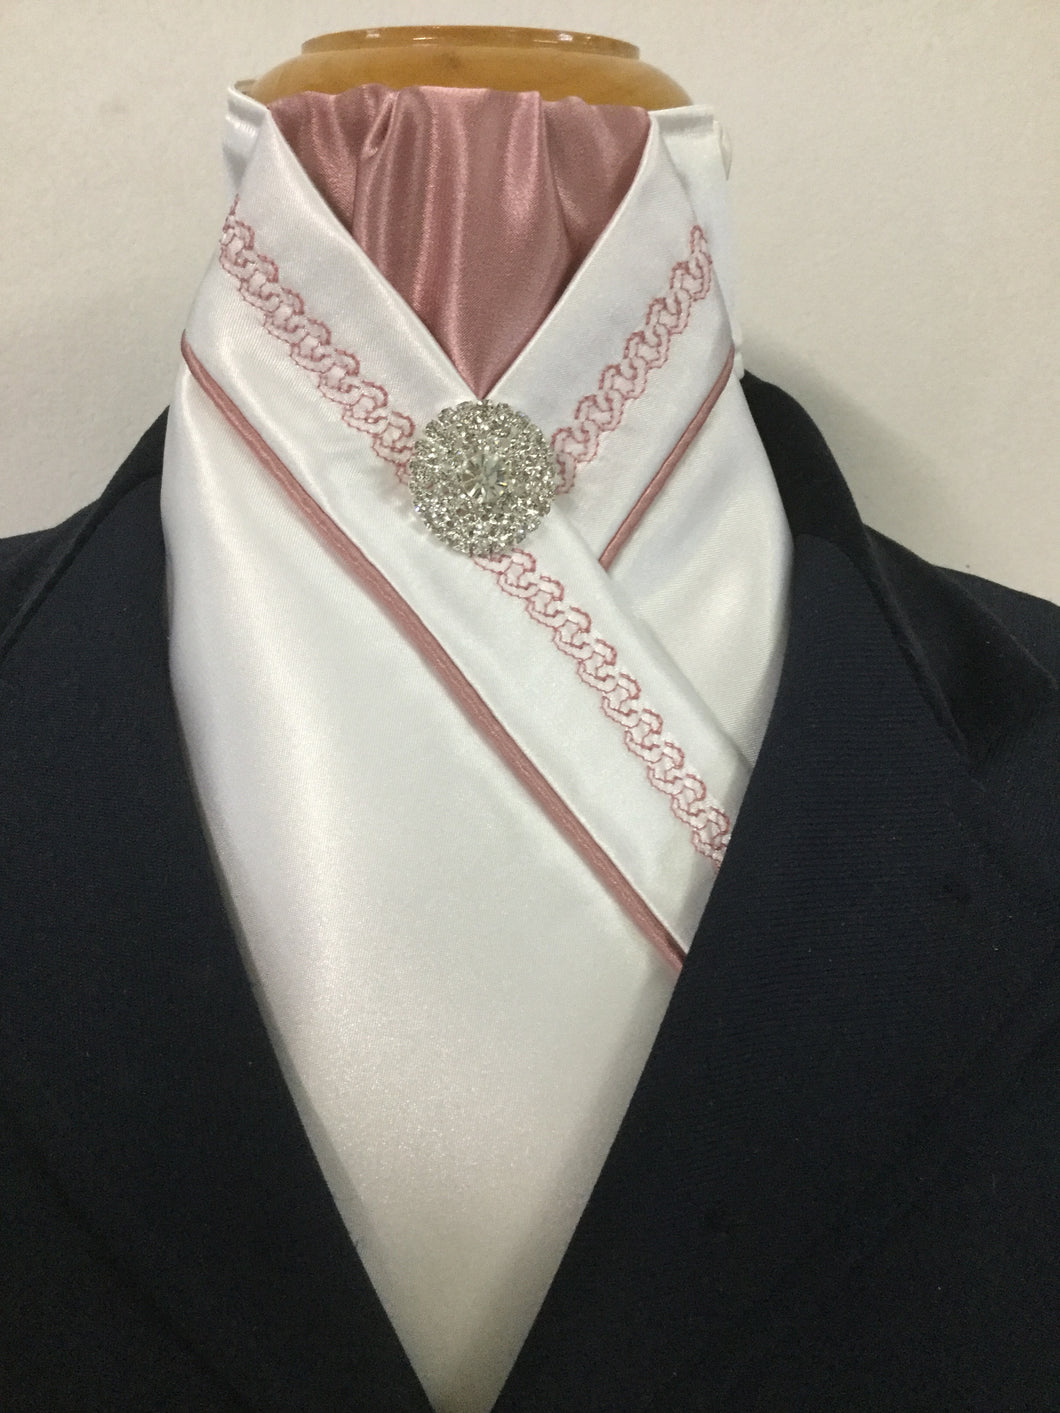 HHD White Satin Pretied Stock Tie Rose Pink Chain Embroidered